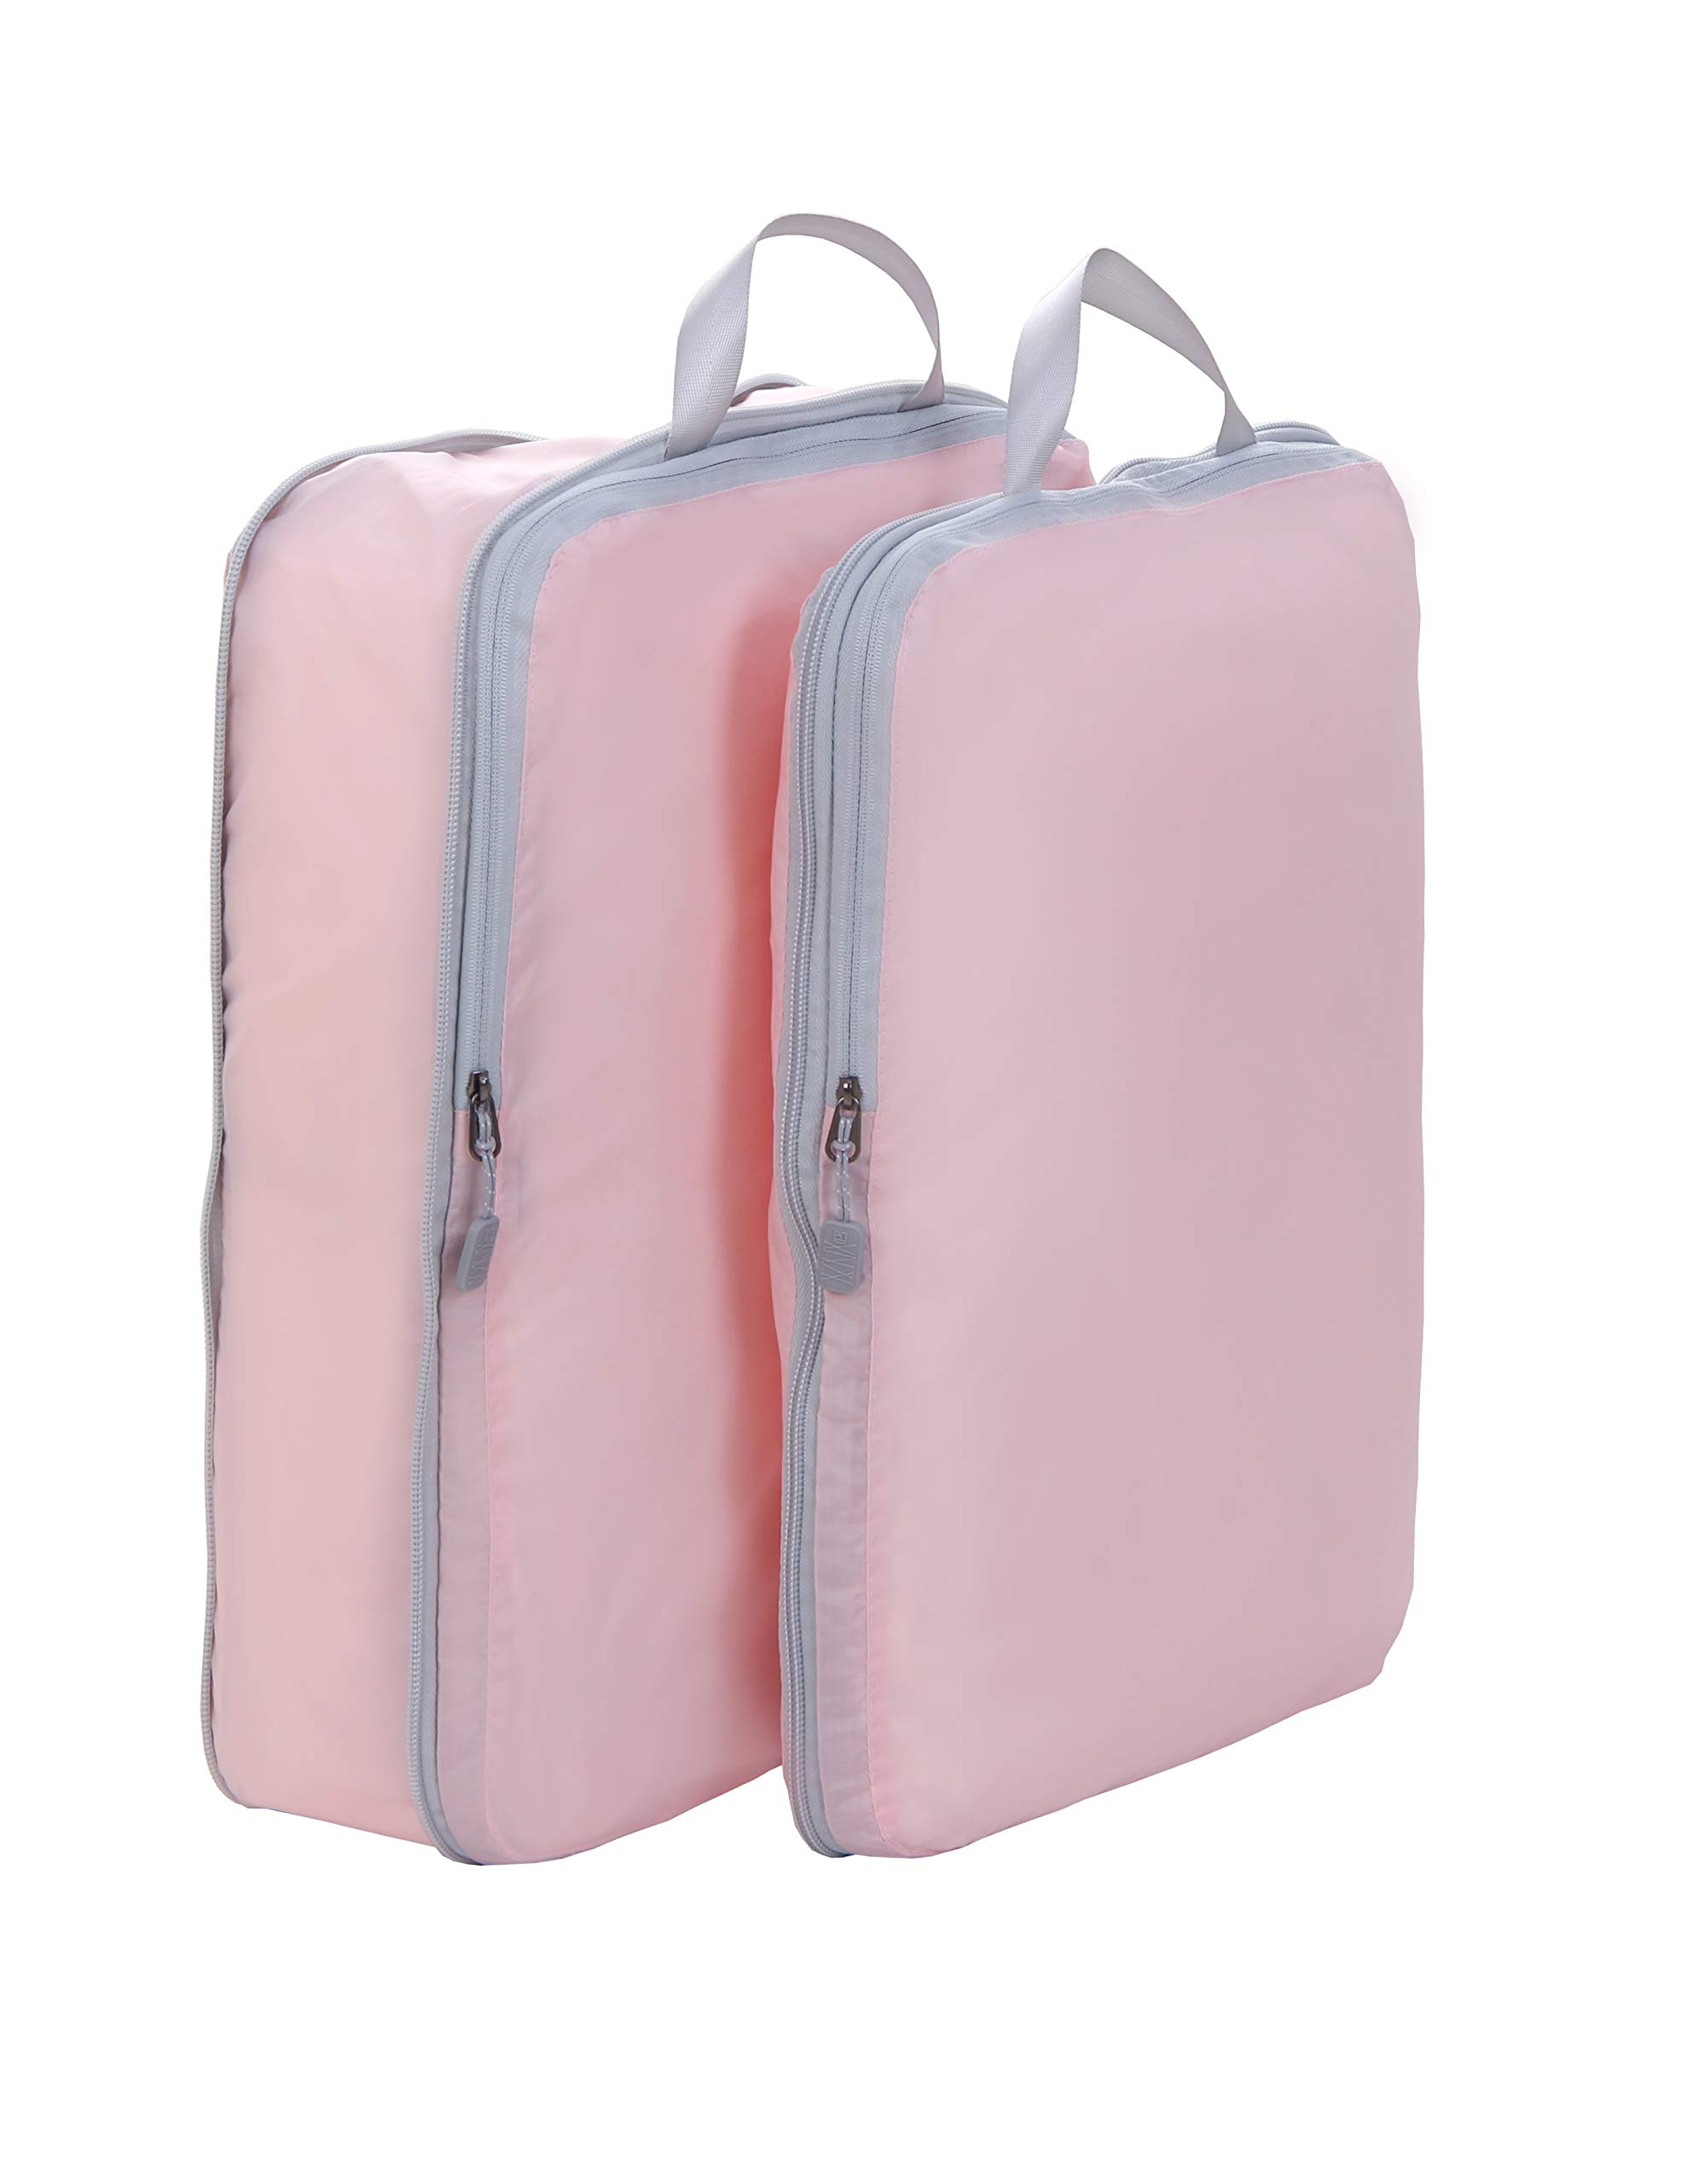 Compression Packing Cubes, JJ POWER Travel Backpack Organizers X-Large 2 Set (Two set- Pink)